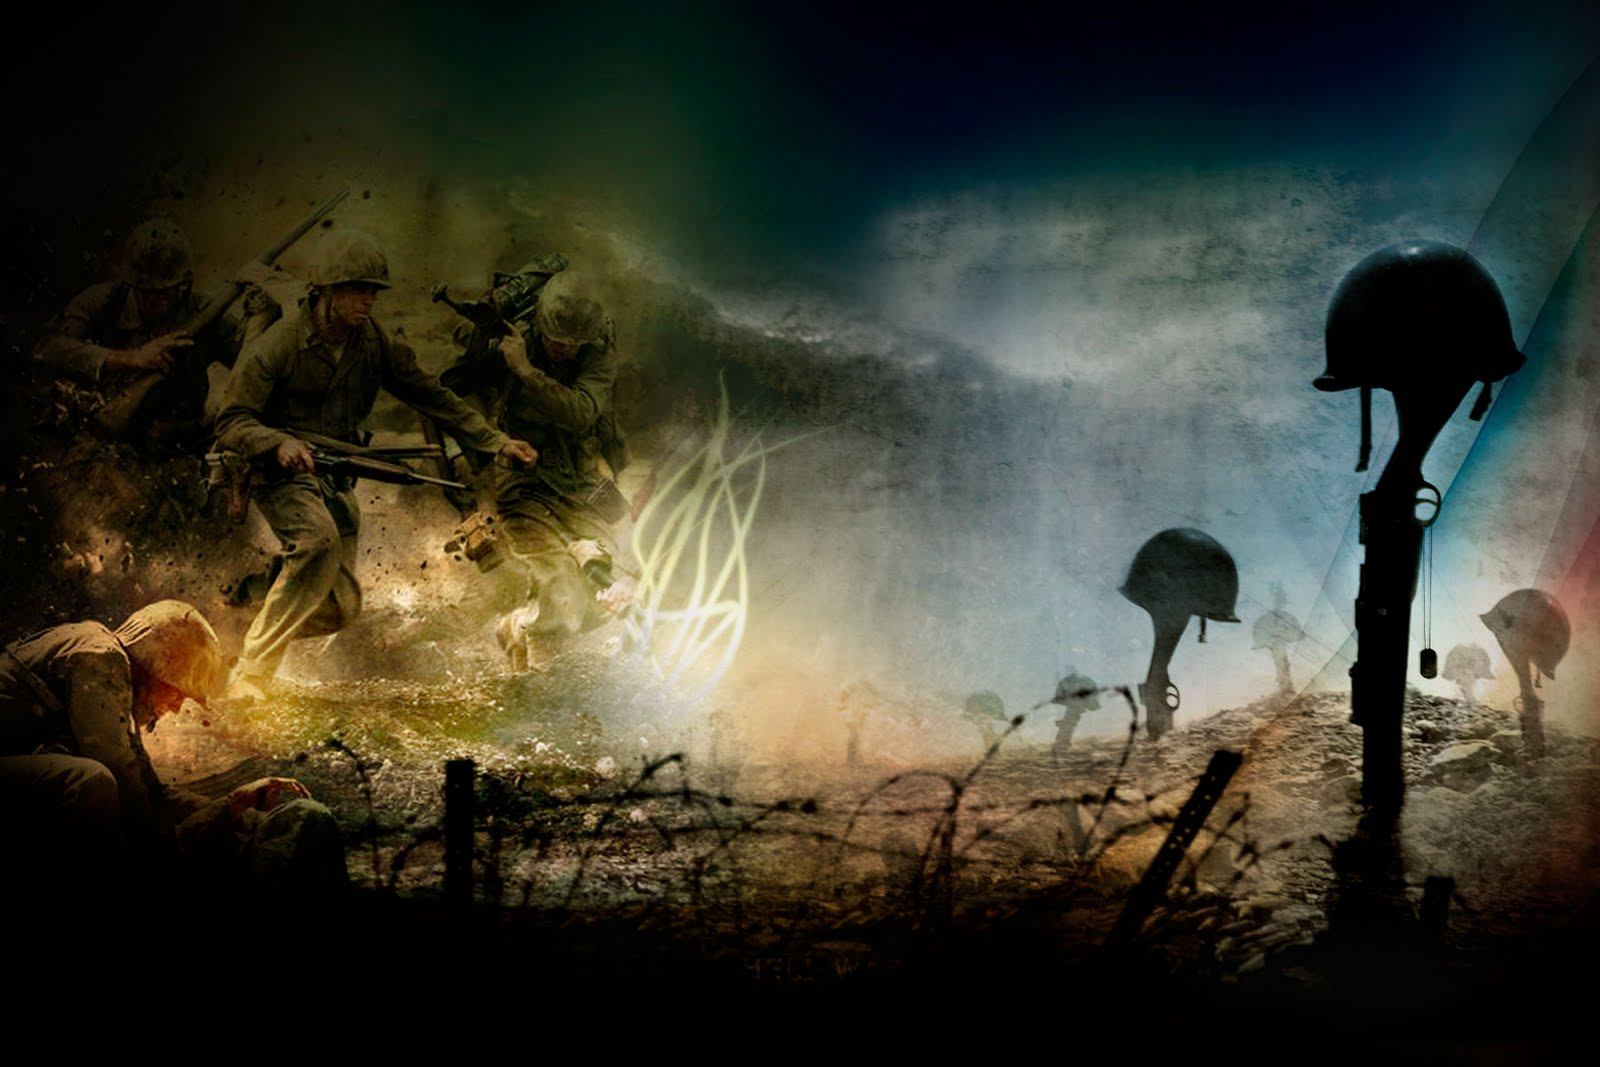 Trololo blogg wallpaper ii world war - World war 2 desktop wallpaper ...